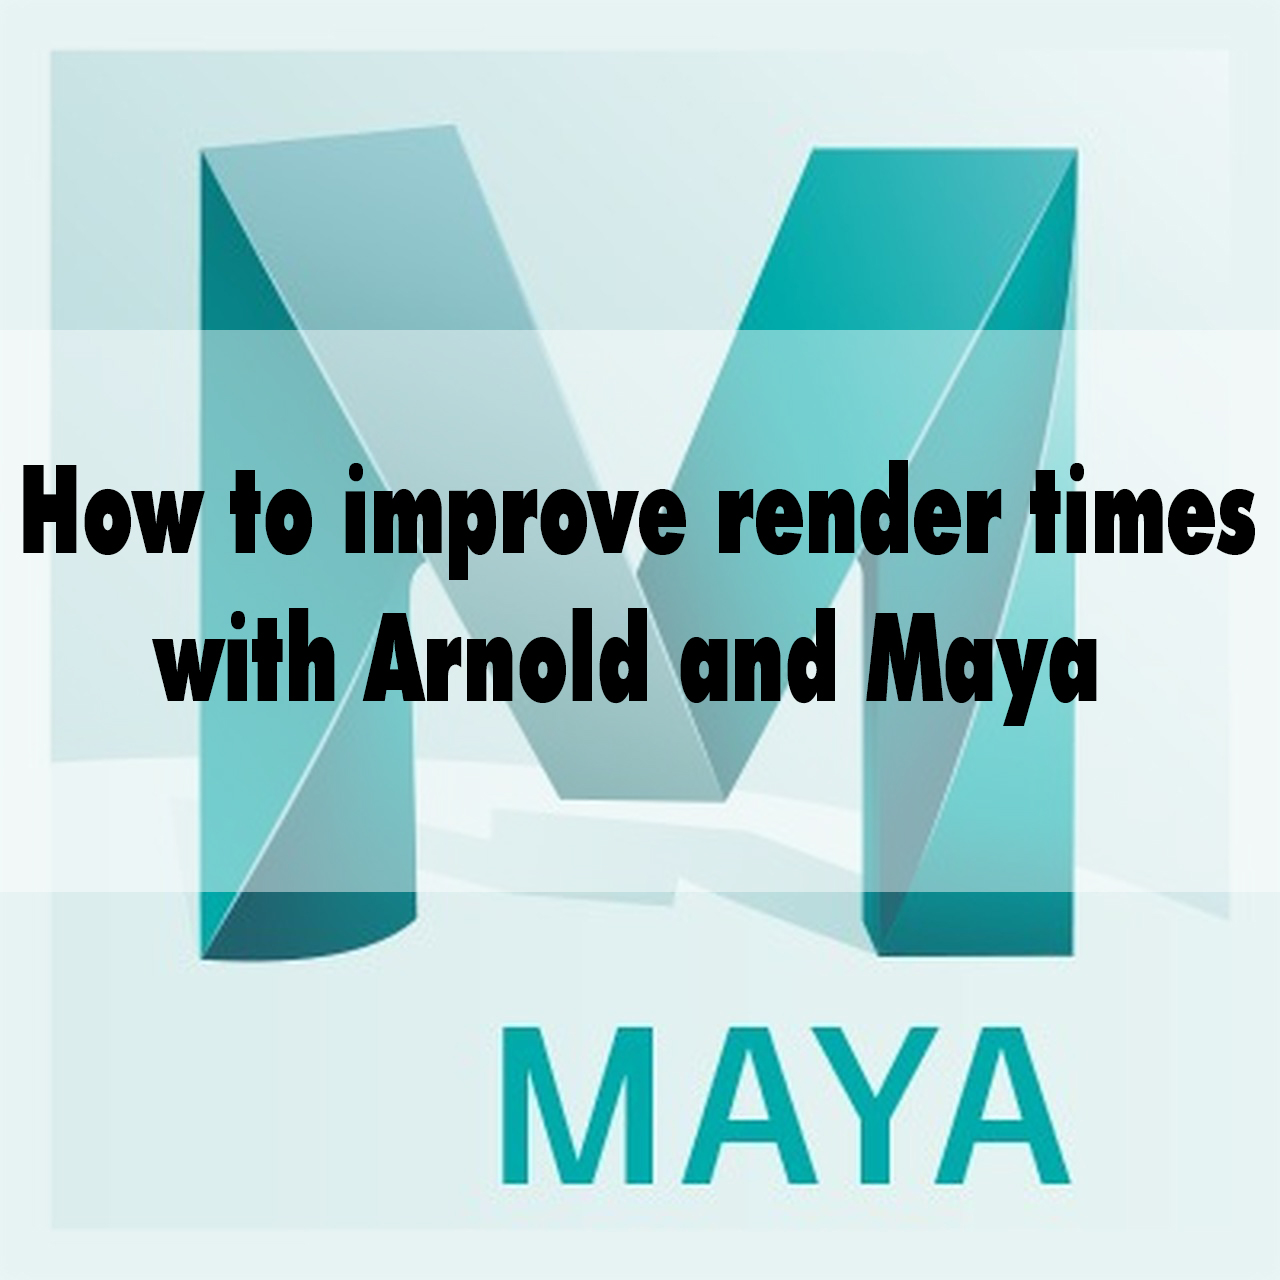 How to improve render times with Arnold and Maya